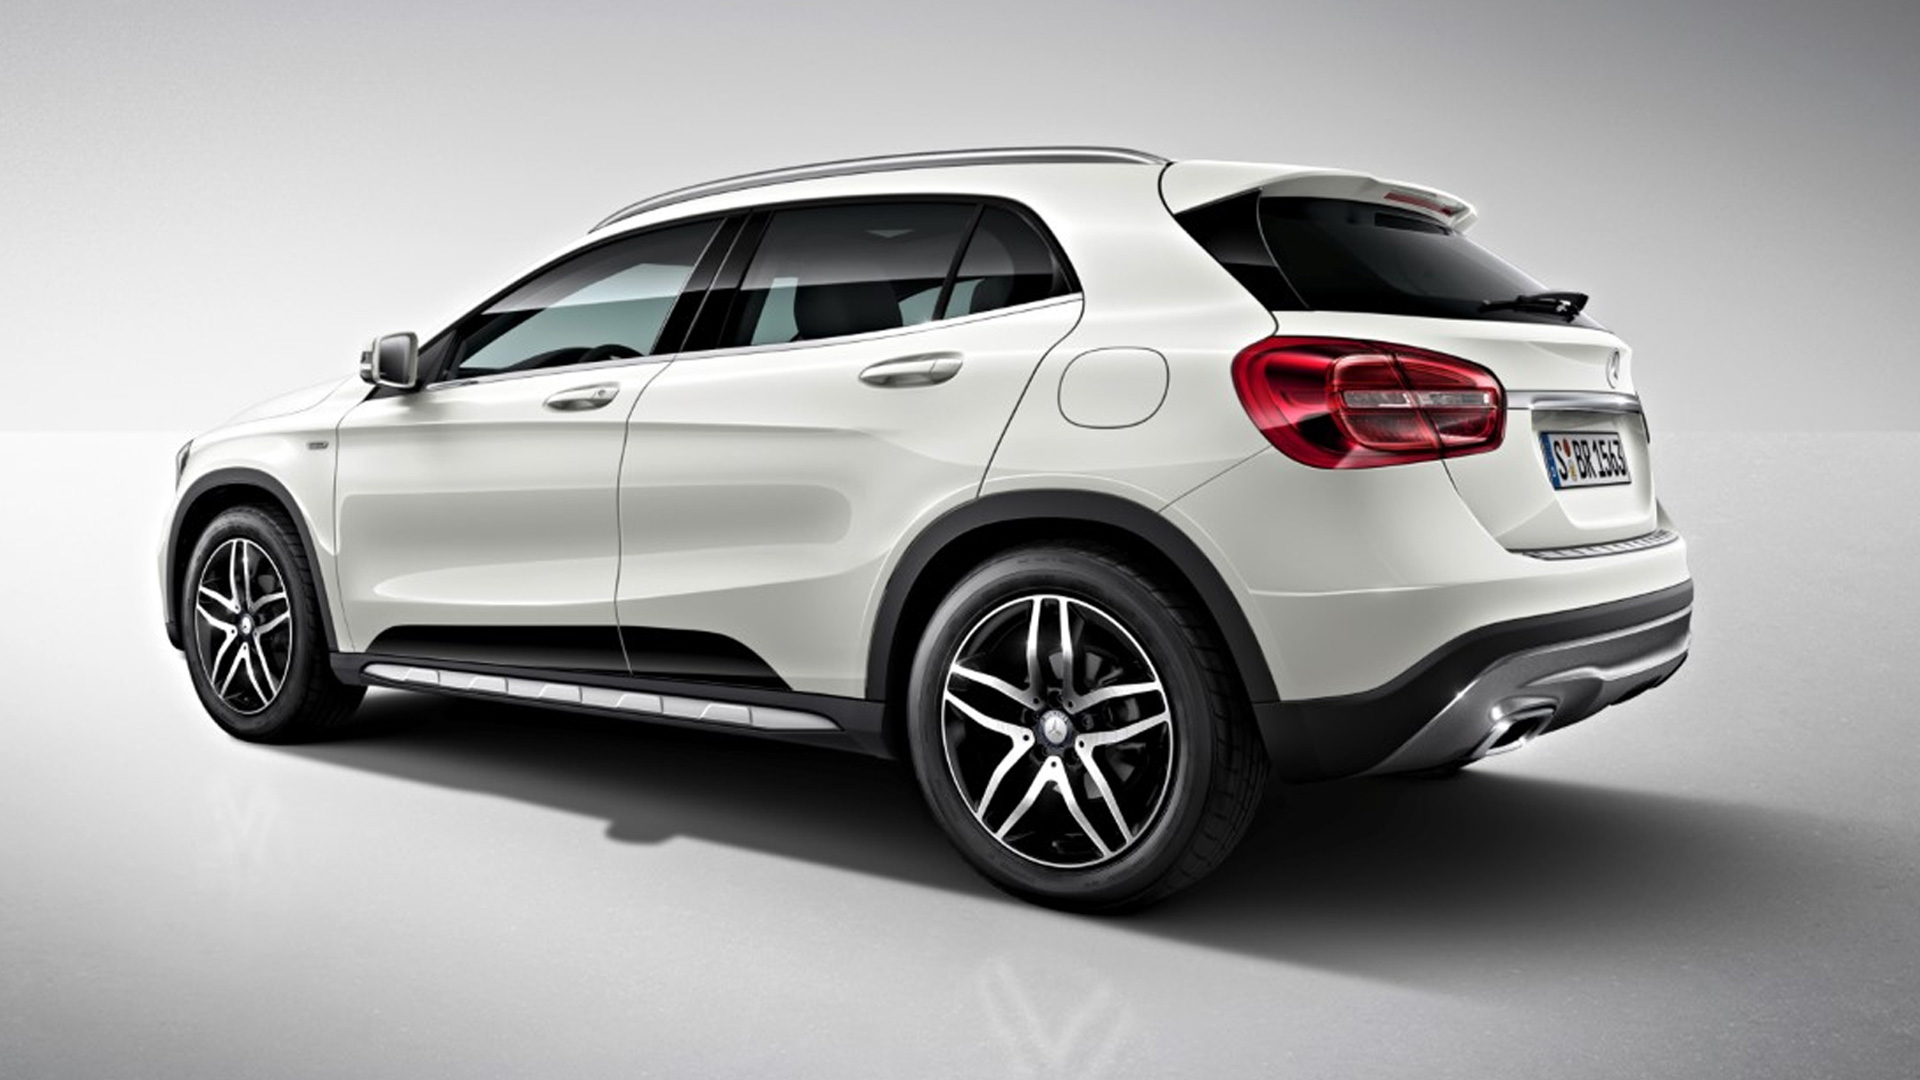 mercedes benz gla 2018 price mileage reviews specification gallery overdrive. Black Bedroom Furniture Sets. Home Design Ideas